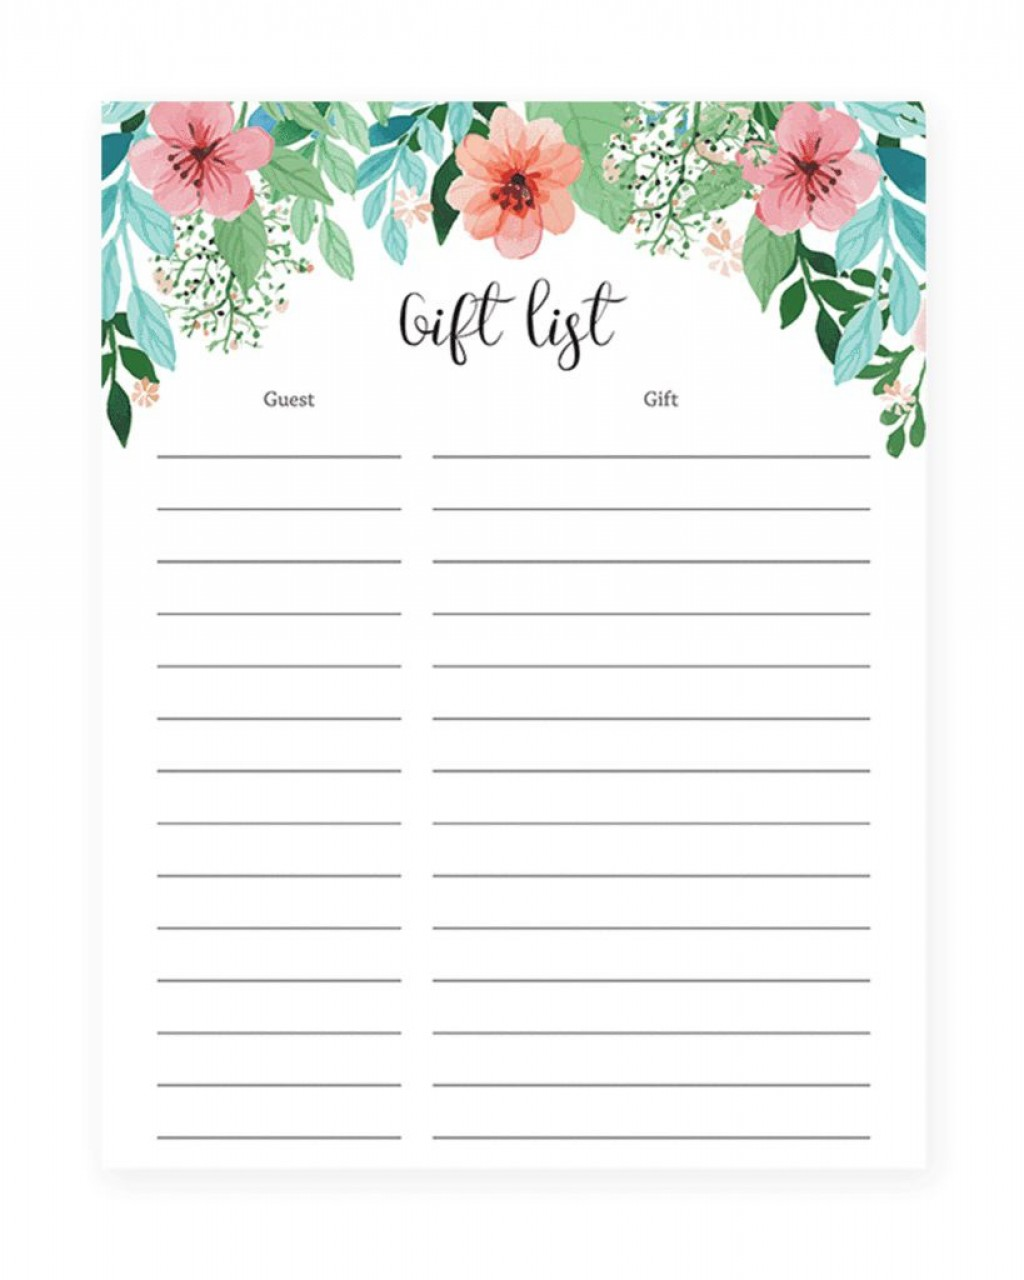 003 Wondrou Baby Shower Guest List Template Inspiration  Free GiftLarge